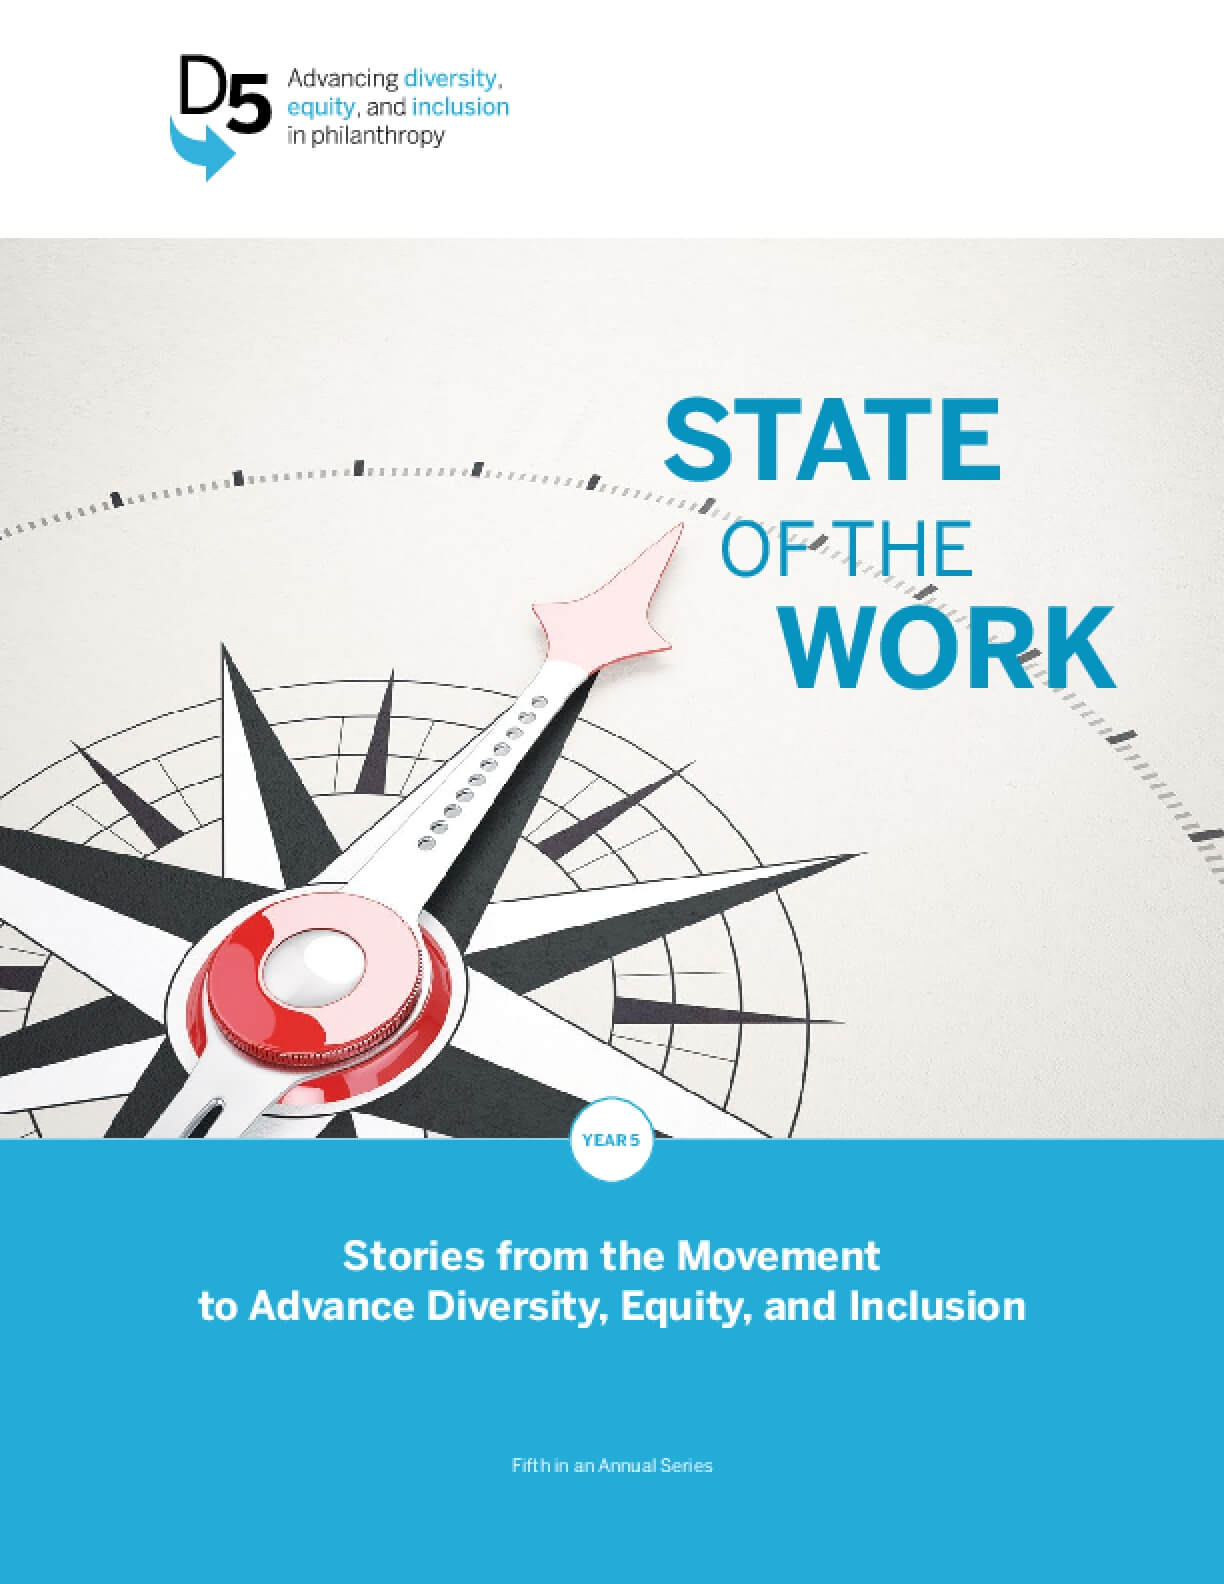 State of the Work: Stories from the Movement to Advance Diversity, Equity, and Inclusion